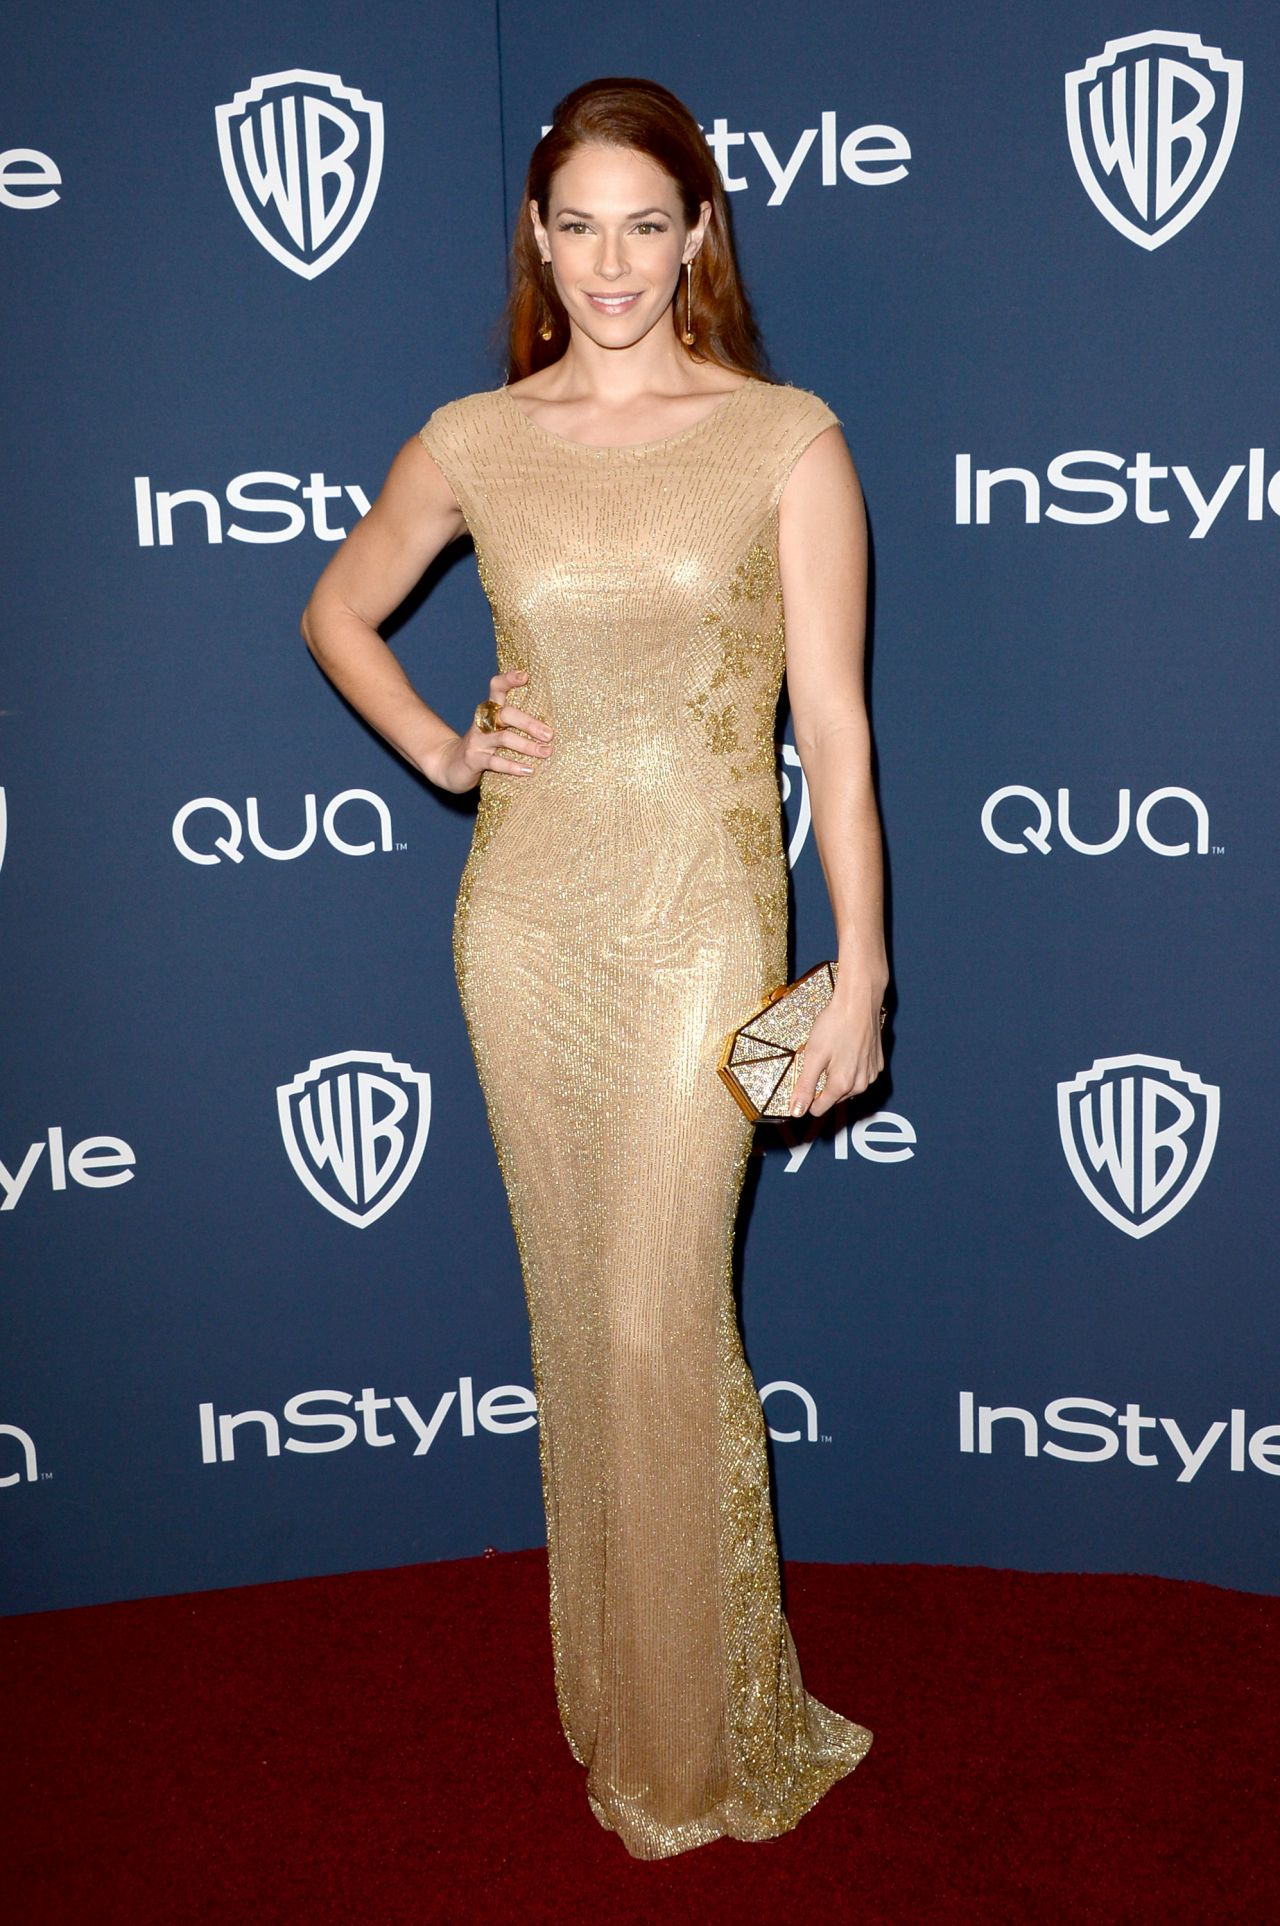 http://celebmafia.com/wp-content/uploads/2014/01/amanda-righetti-at-2014-golden-globes-afterparty_1.jpg